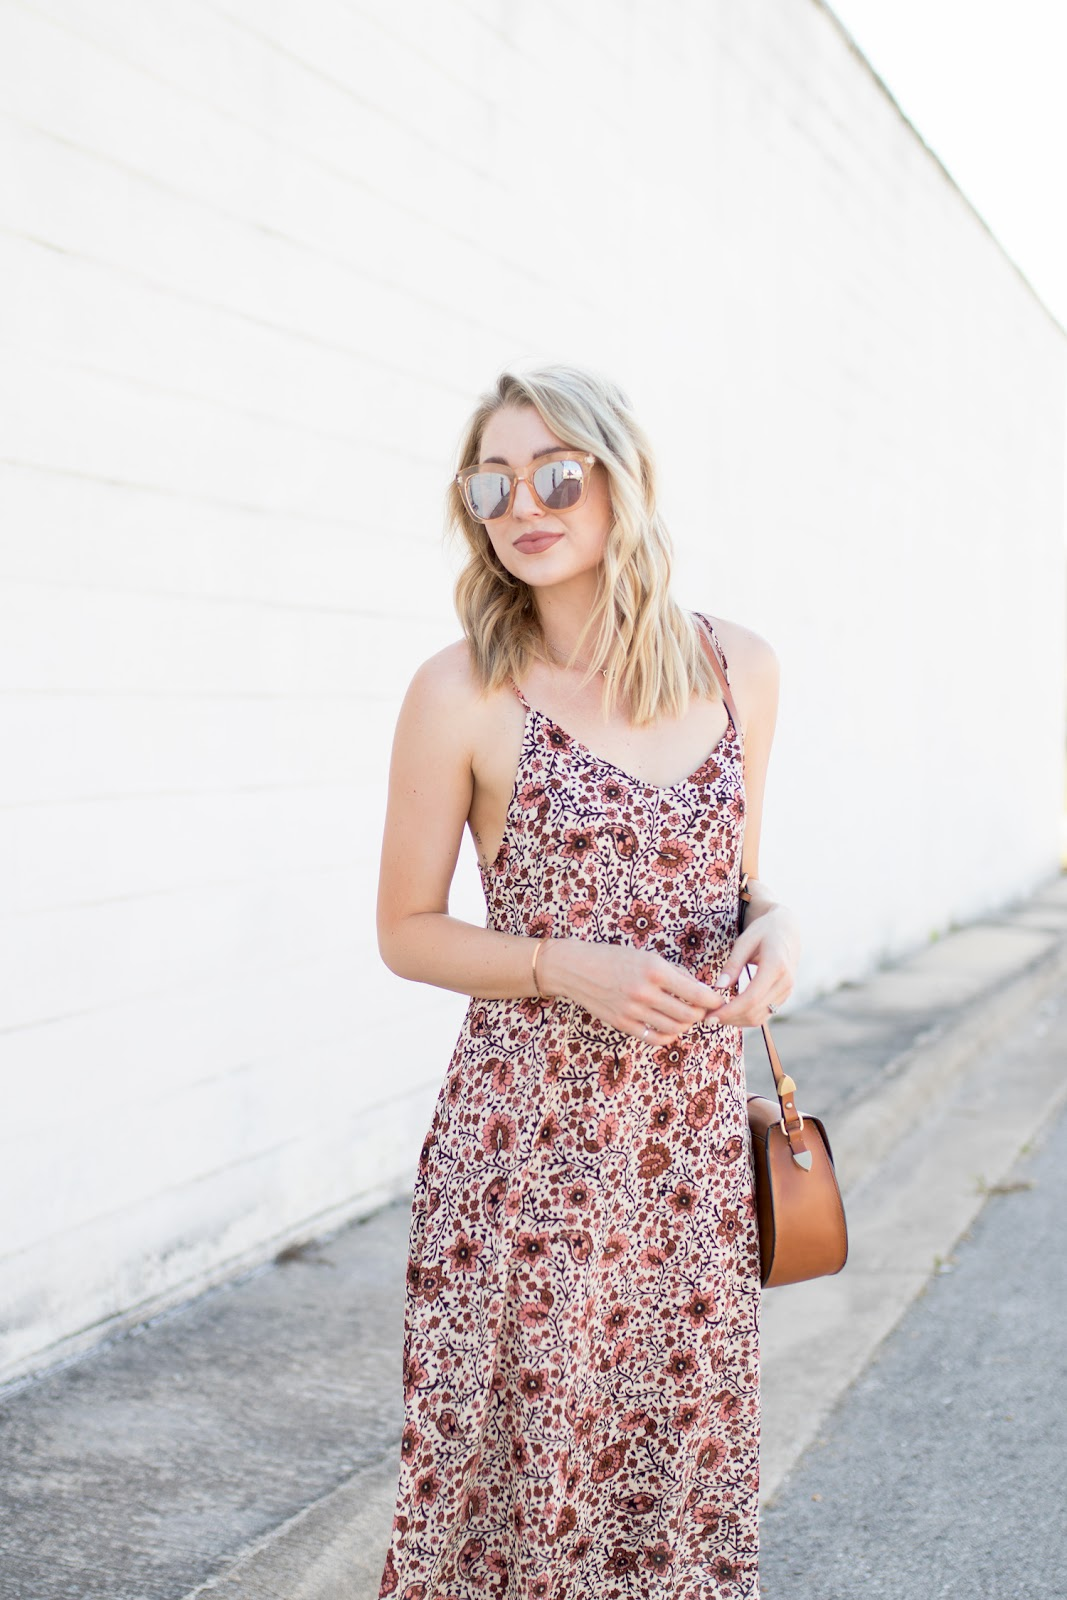 Floral and paisley print dress